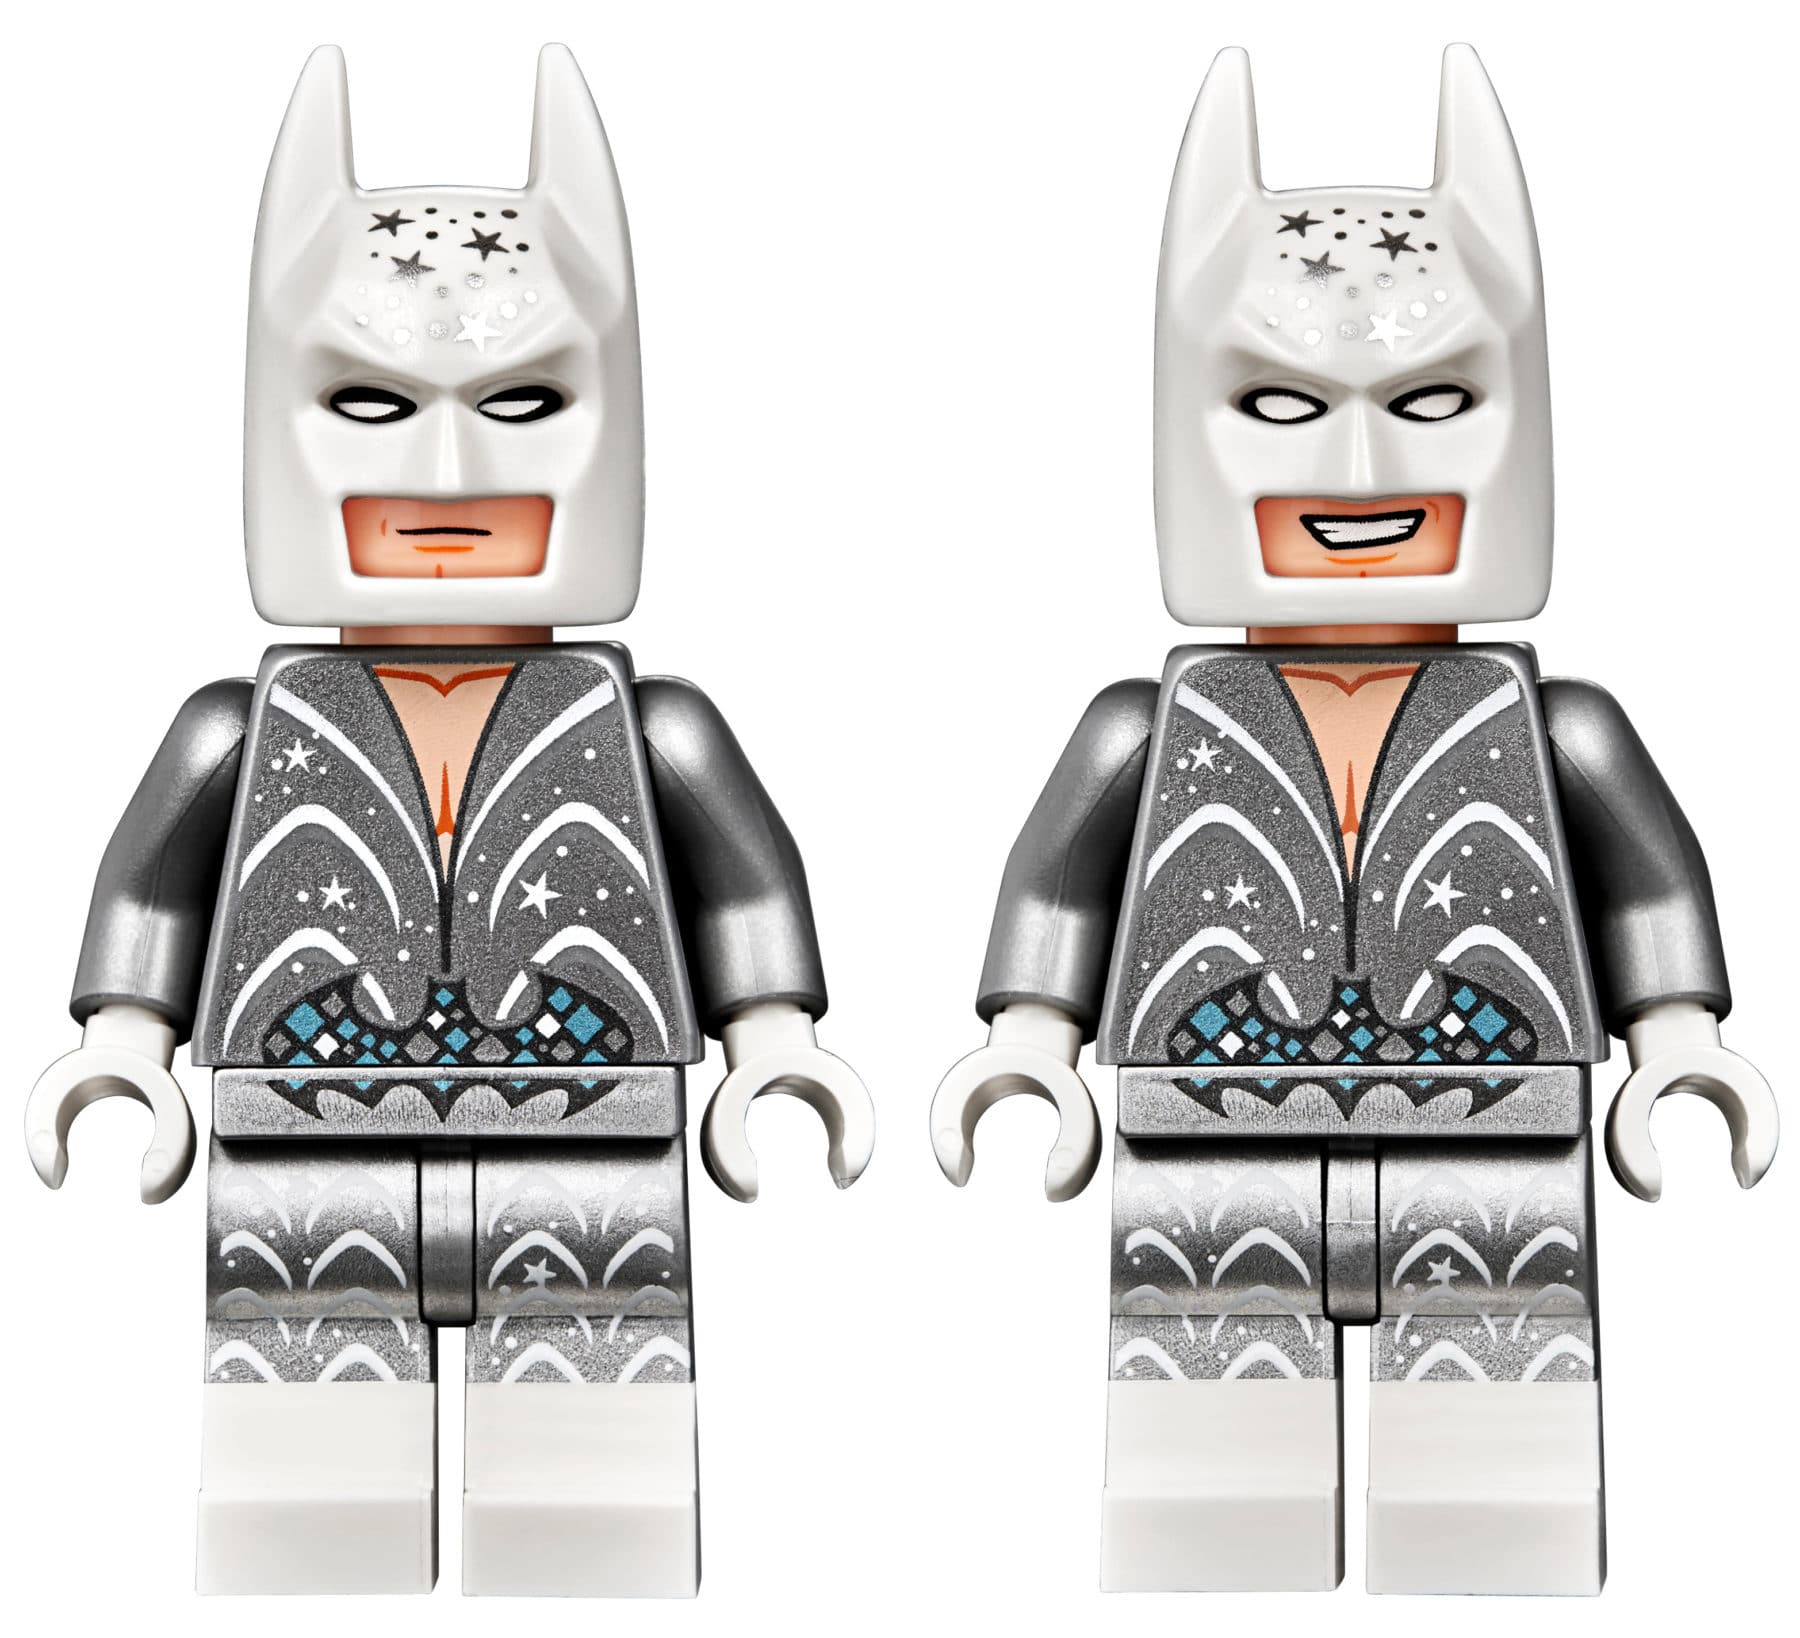 Batman im LEGO 70838 Queen Watevra's 'So-Not-Evil' Space Palace